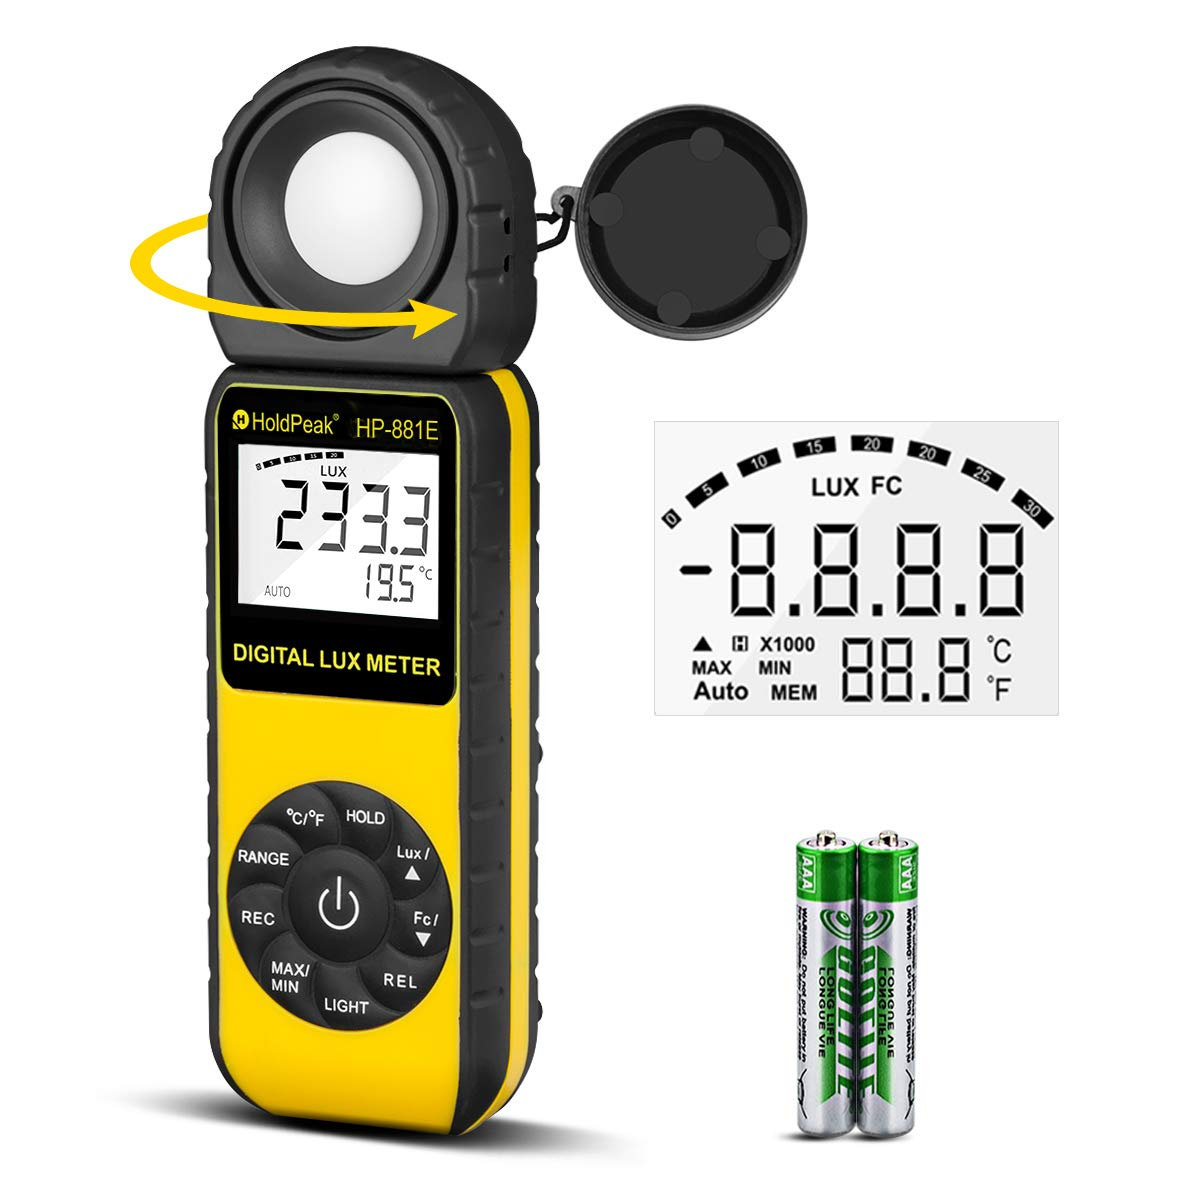 Light Meter-HOLDPEAK 881E Digital Illuminanc/Light Meter with 0.01~300,000 Lux (0.01~30,000 FC) Measuring Ranges and 270° Rotatable Detector for LED Lights and Plants Lumen Meter by H HOLDPEAK